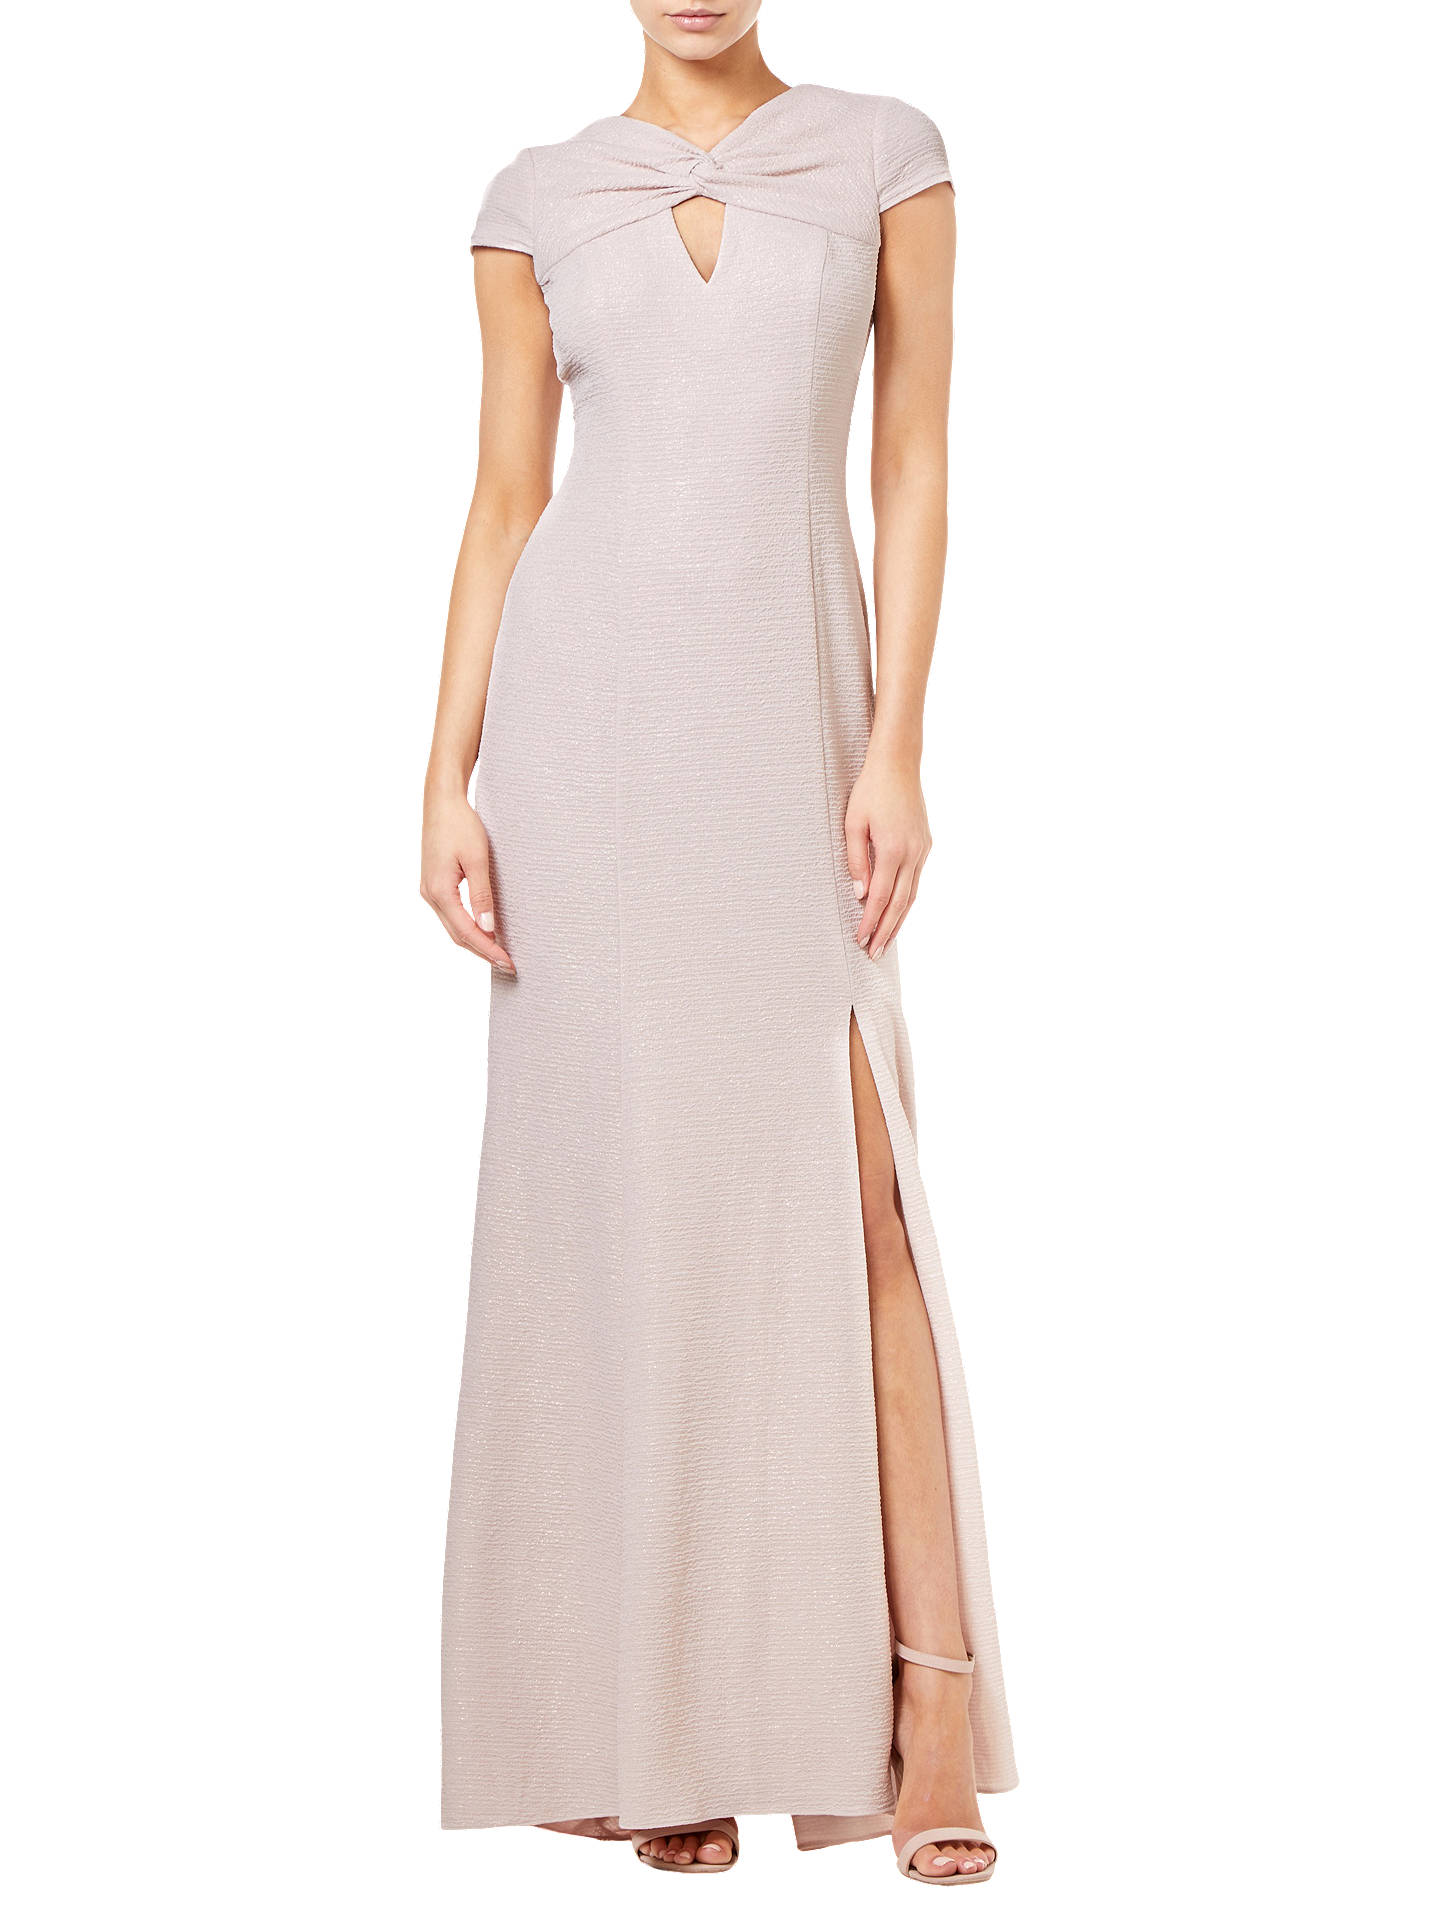 Buy Adrianna Papell Metallic Knitted Dress, Blush Pink, 14 Online at johnlewis.com